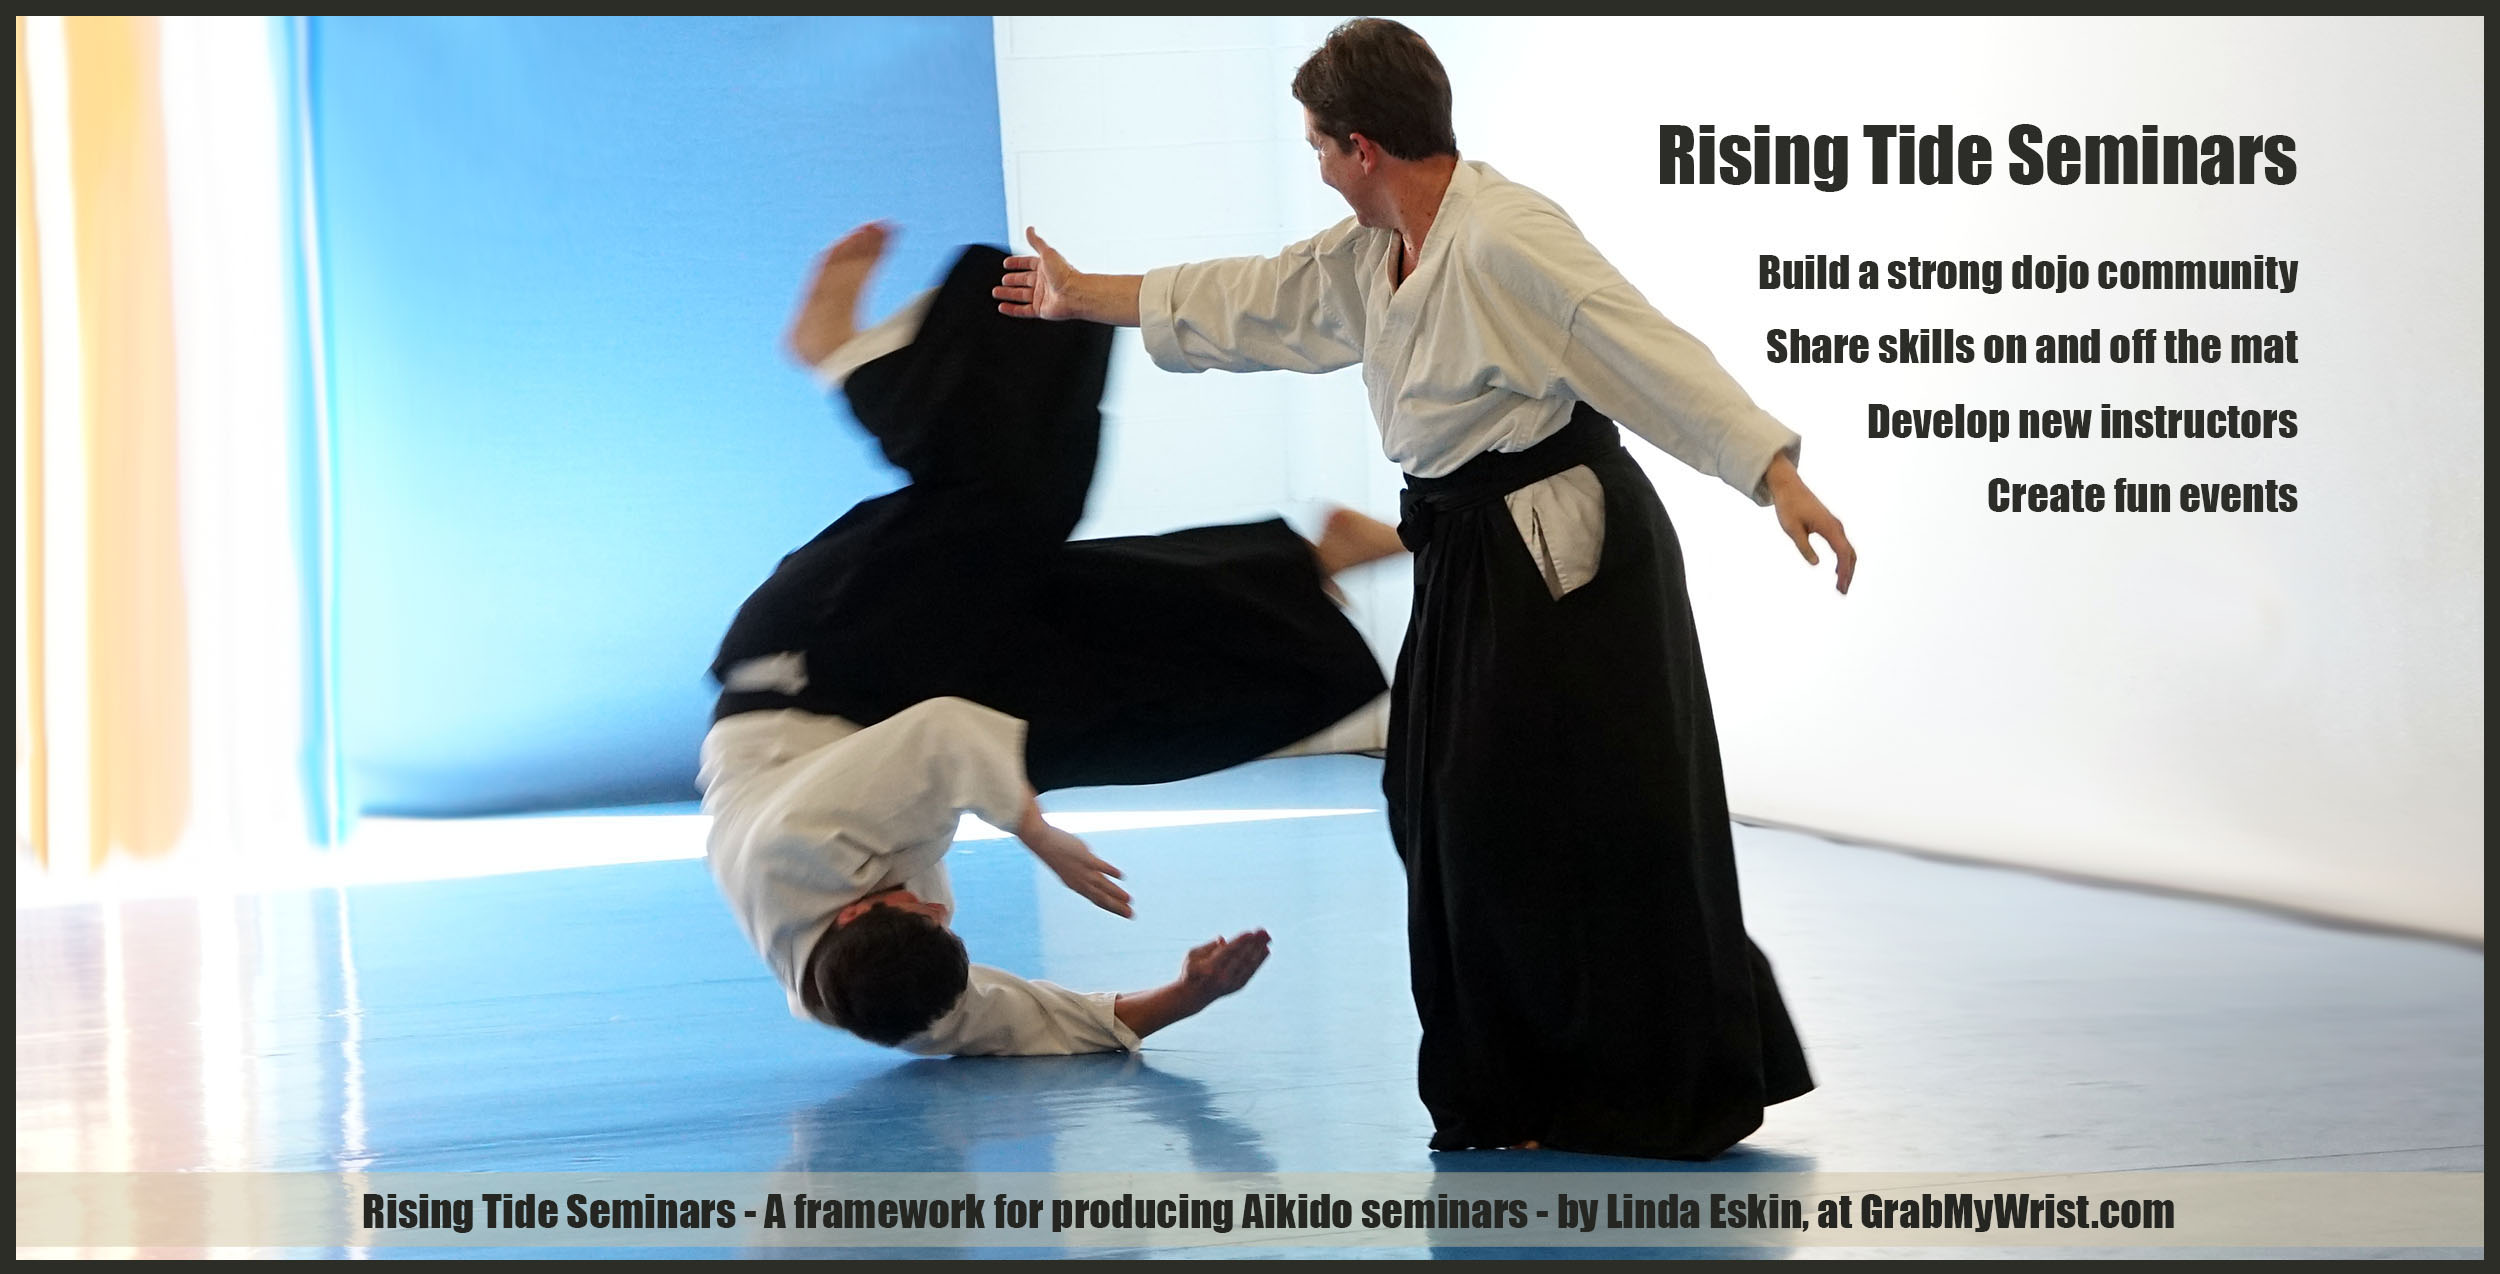 Rising Tide Seminars - A Framework for Growing Together by Producing Aikido Seminars